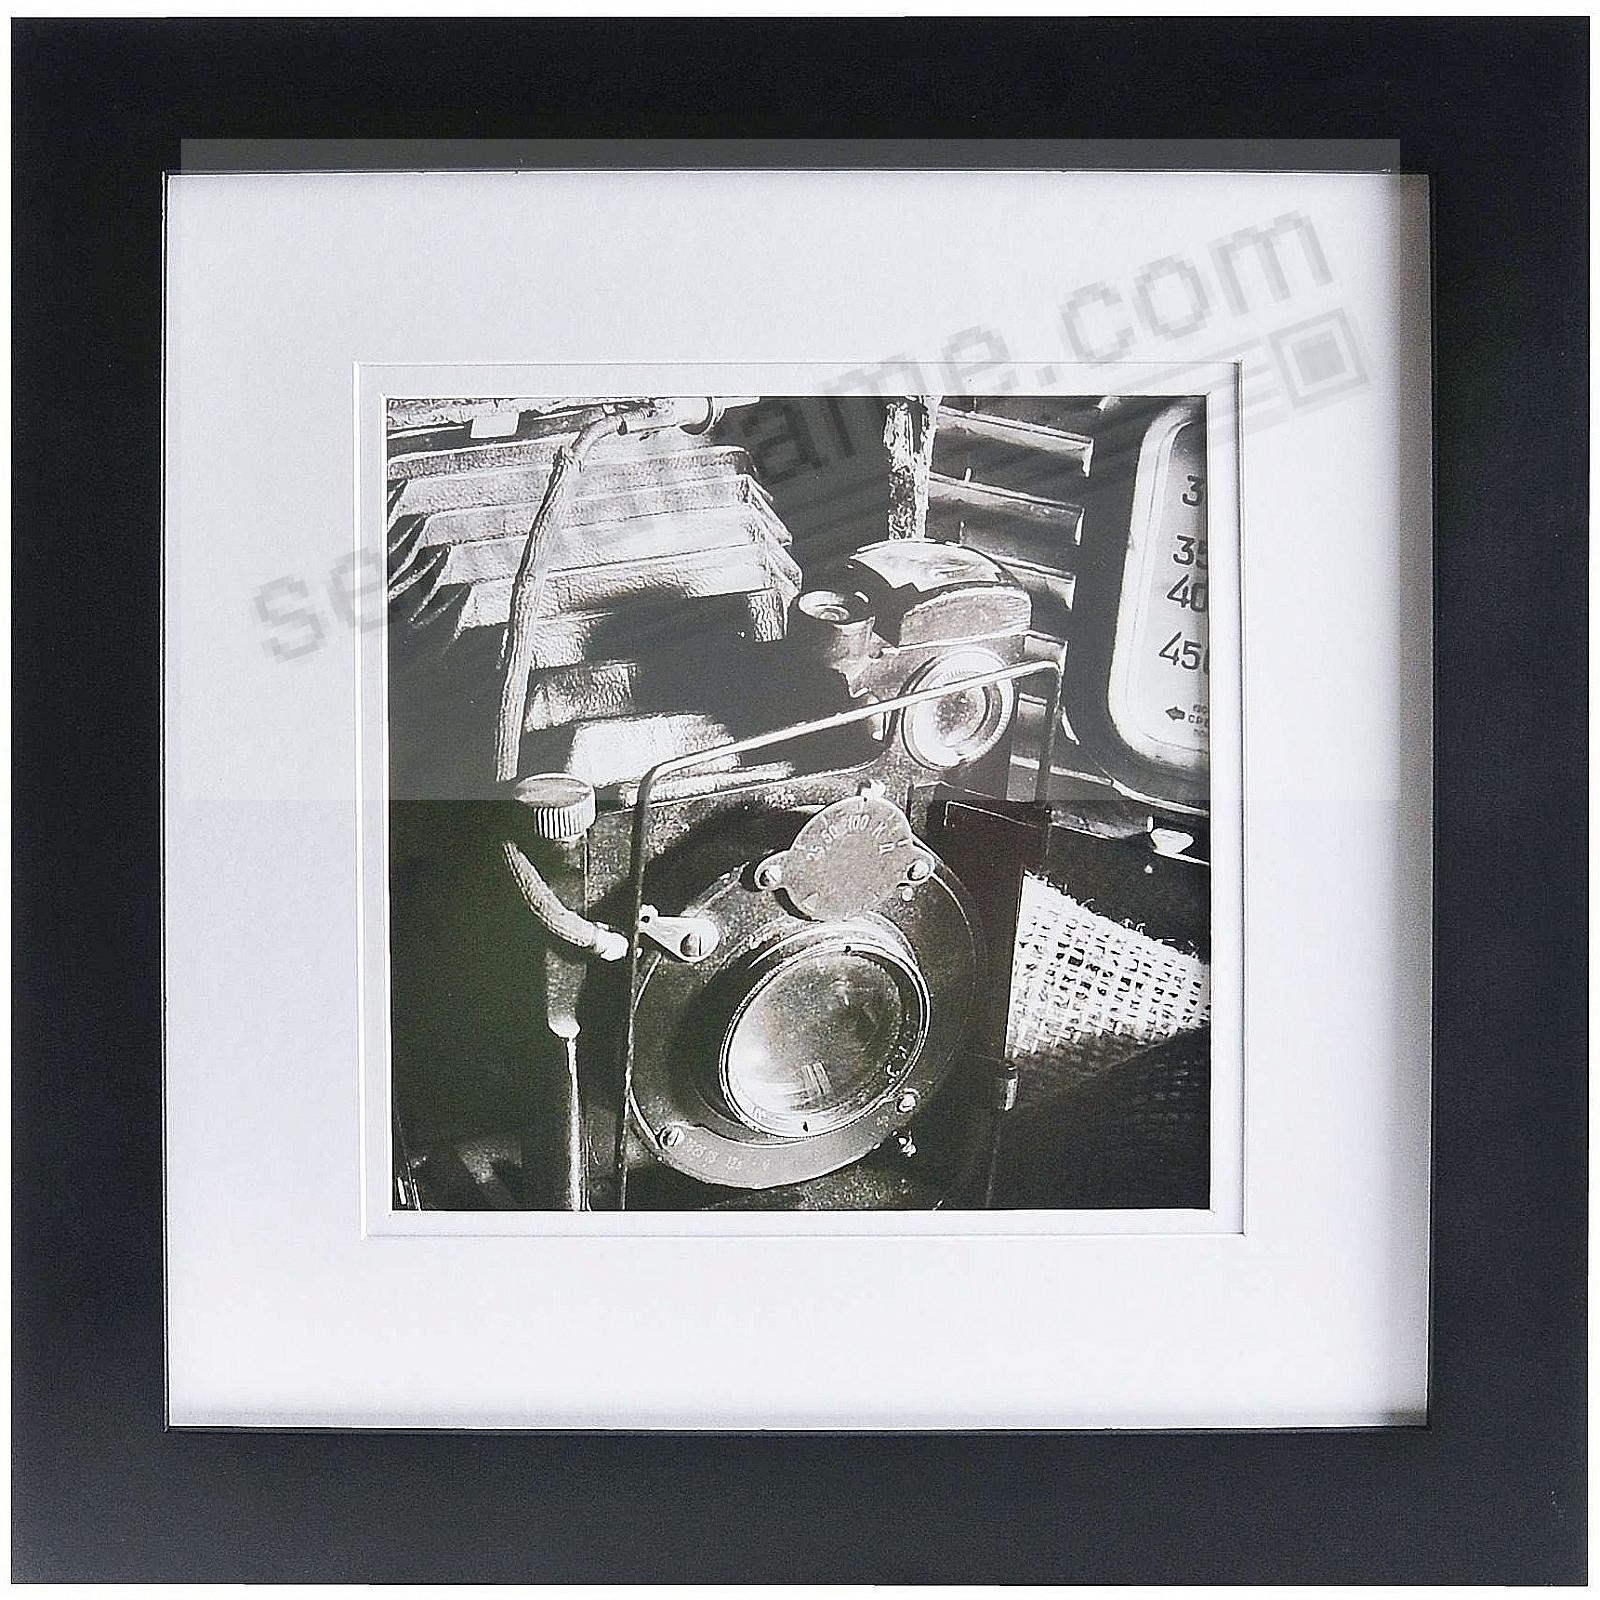 Black Wood Wall Frame 12x128x8 Matted By Gallery Solutions